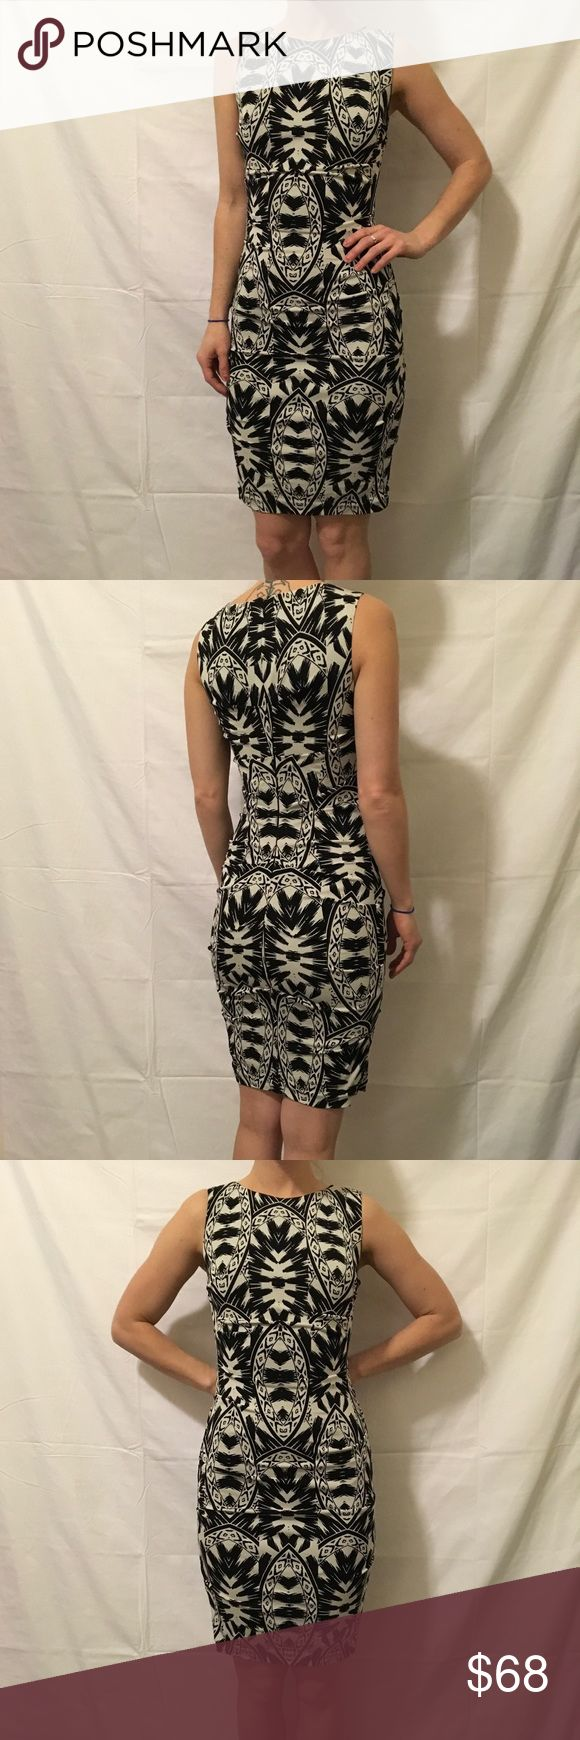 "Nicole Miller Printed Ruched Printed Bodycon Dress Nicole Miller Artelier Black and White Printed dress with a Bodycon fit and is form fitting. Zipper closure in back and is in great condition worn only once! Marked a ""p"" but fits like a 2! Nicole Miller Dresses Midi"